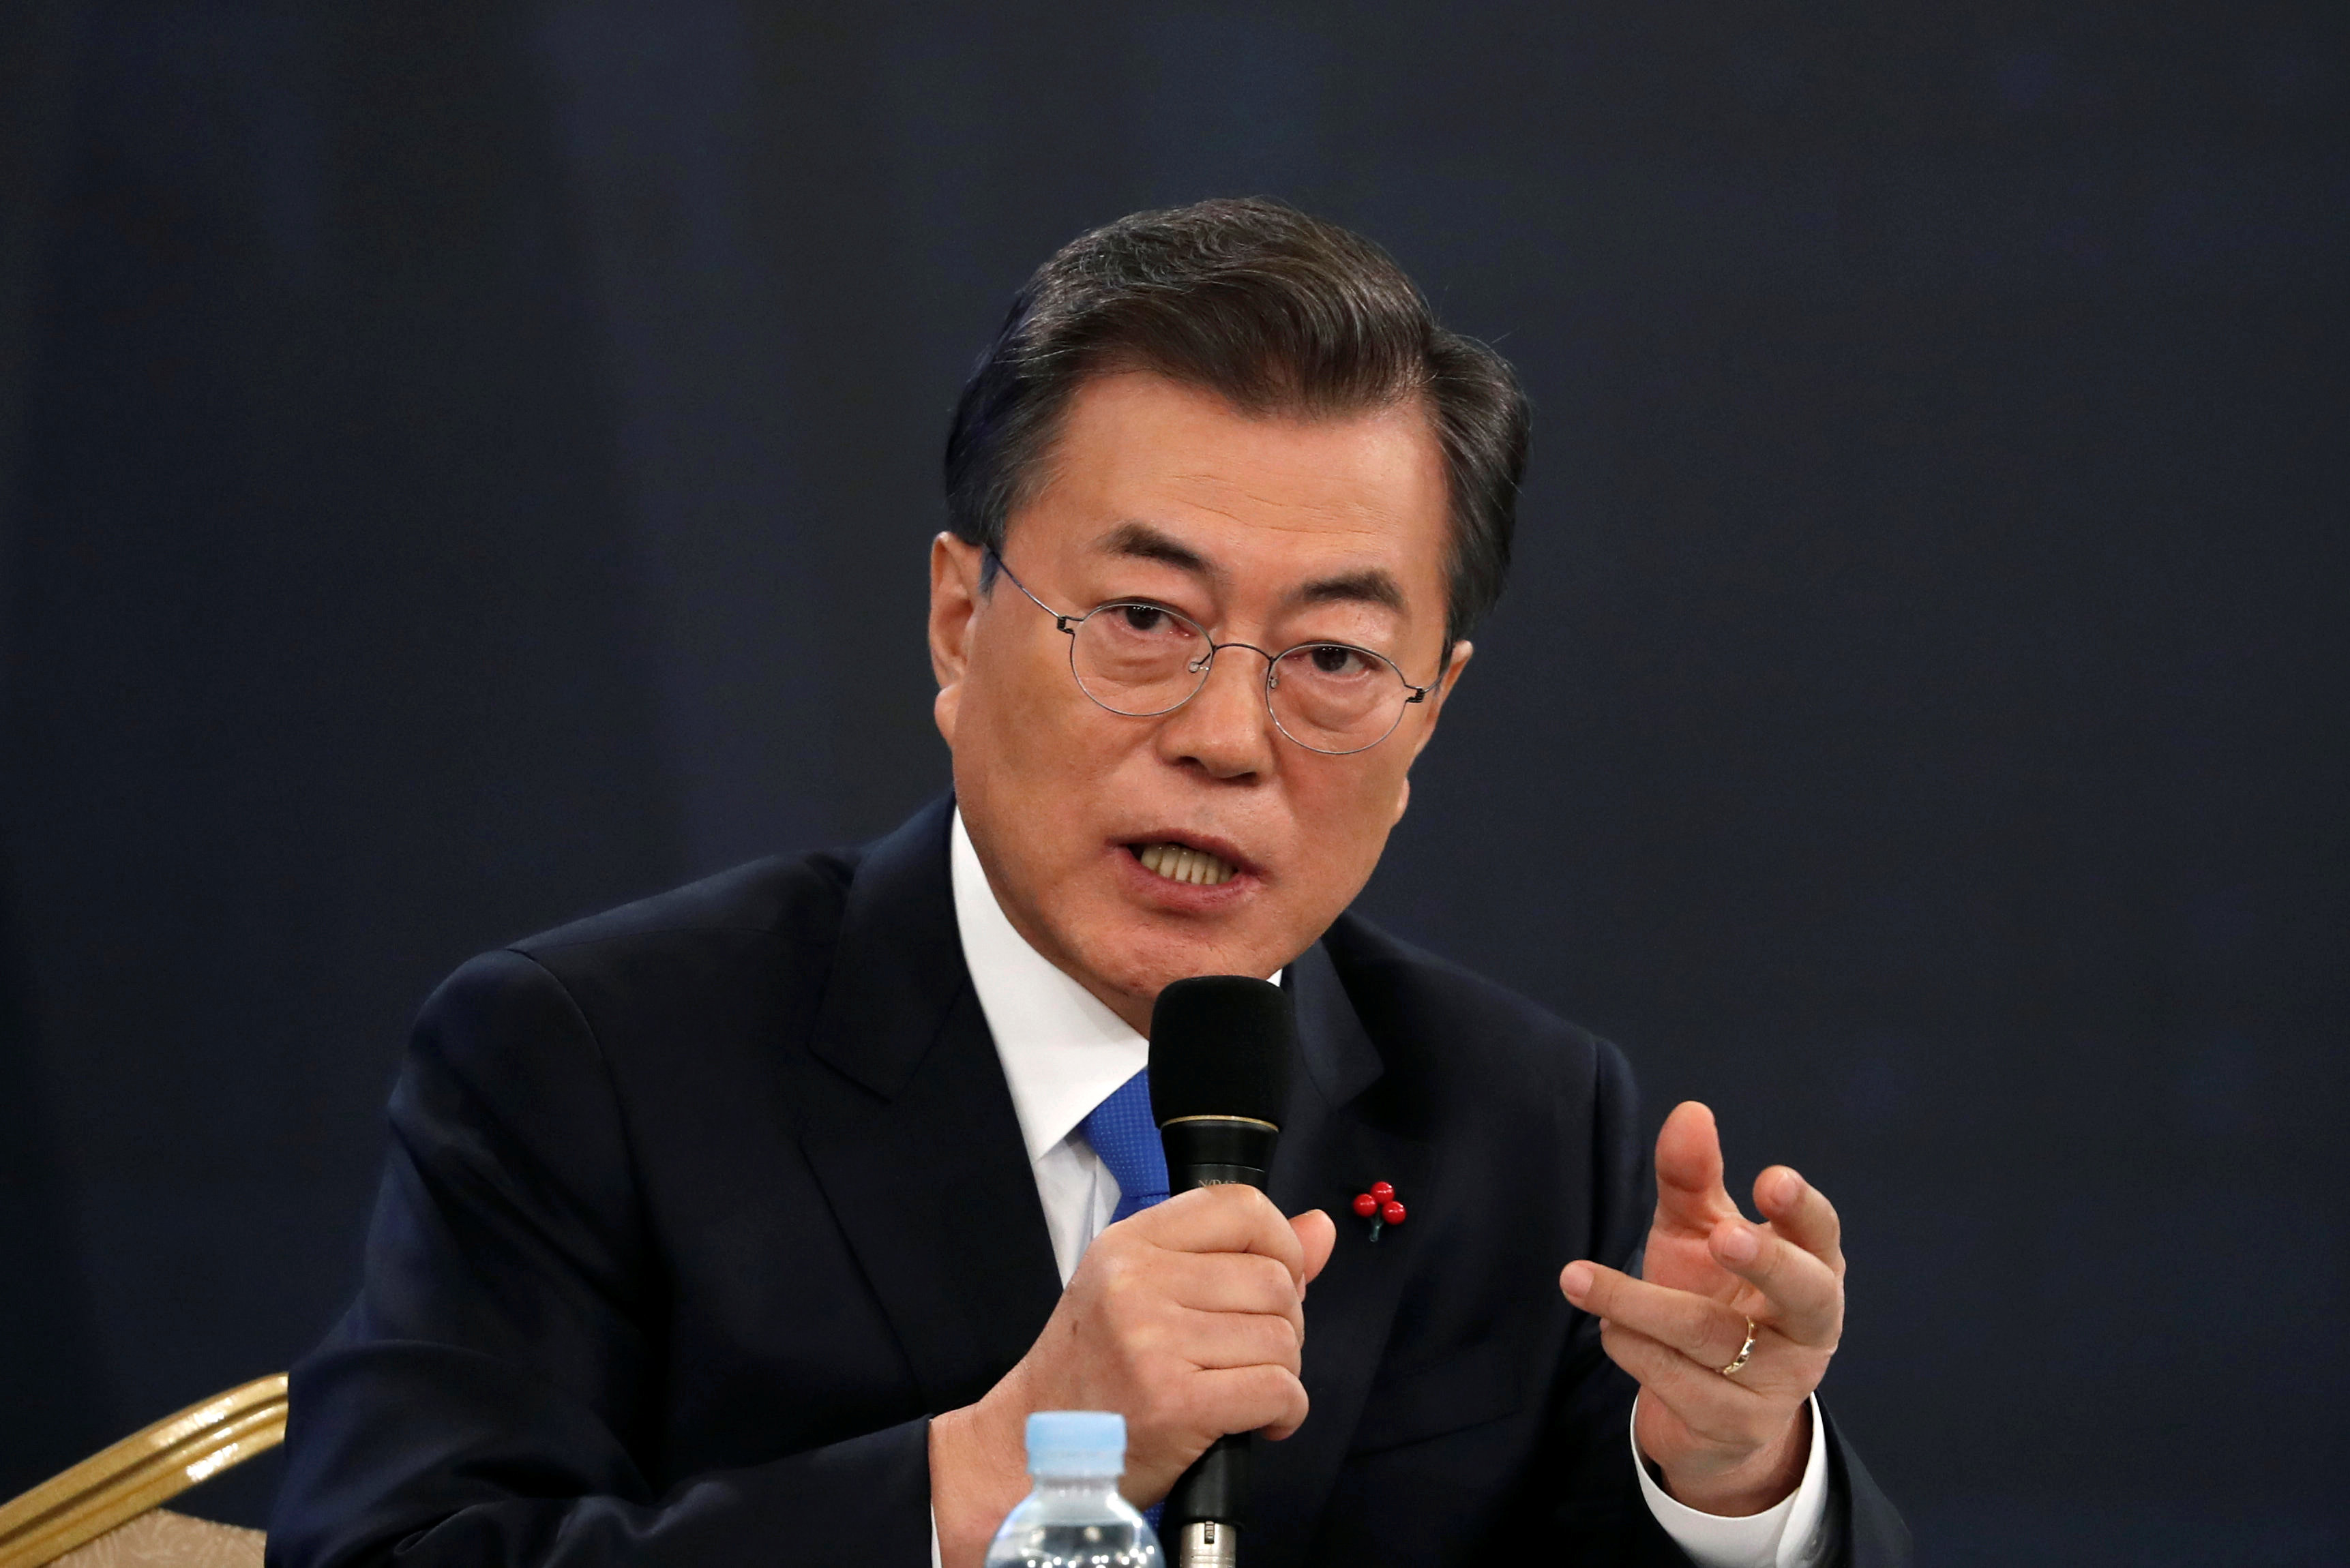 South Korean President Moon Jae-in addresses the media during a New Year news conference at the Presidential Blue House in Seoul on January 10. Photo: Reuters